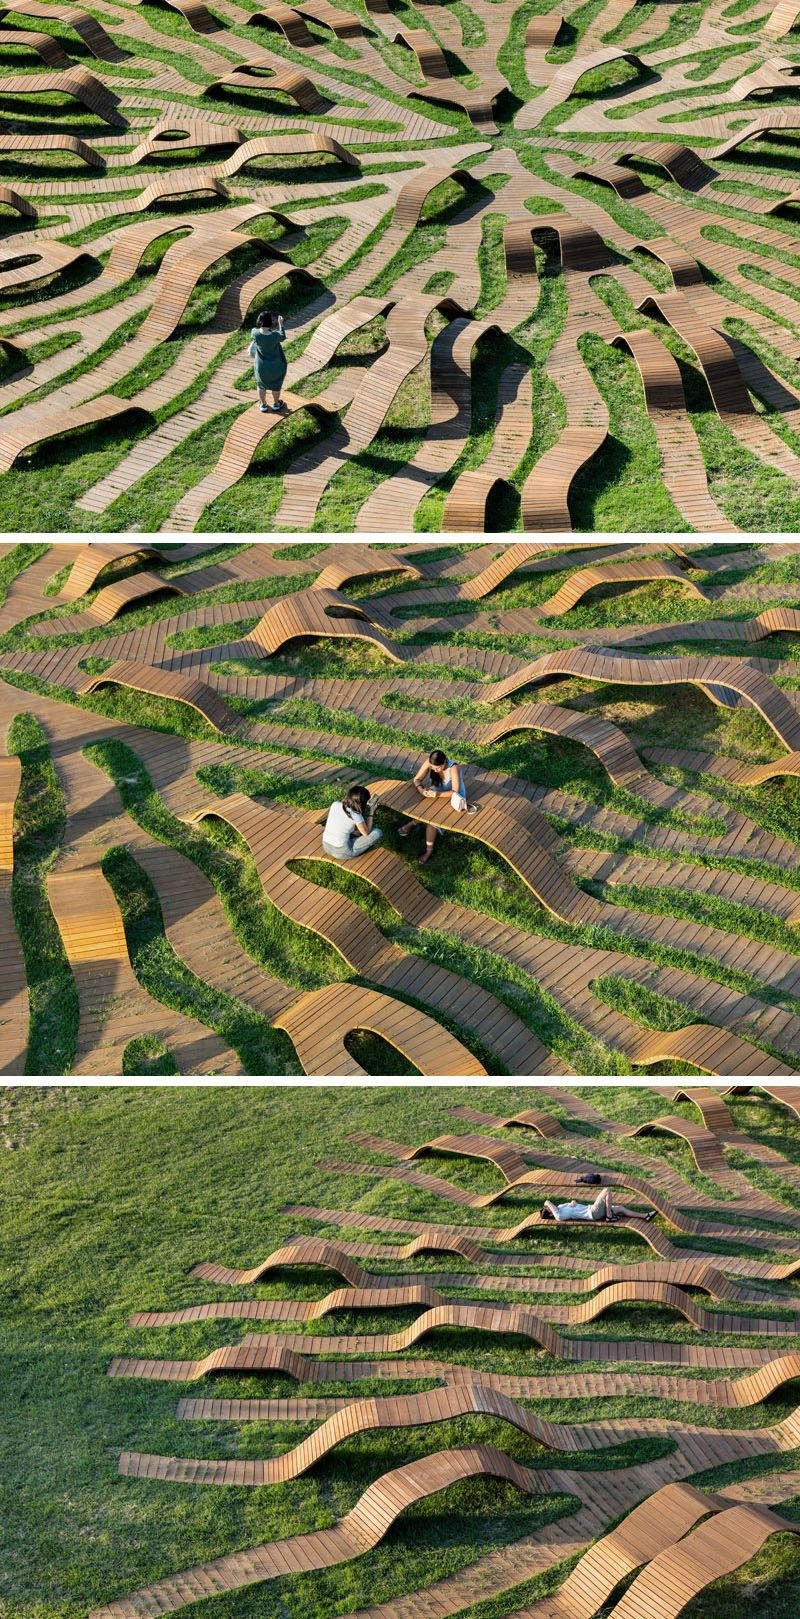 Yong Ju Lee Architecture Have Created The 'Root Bench' In Seoul